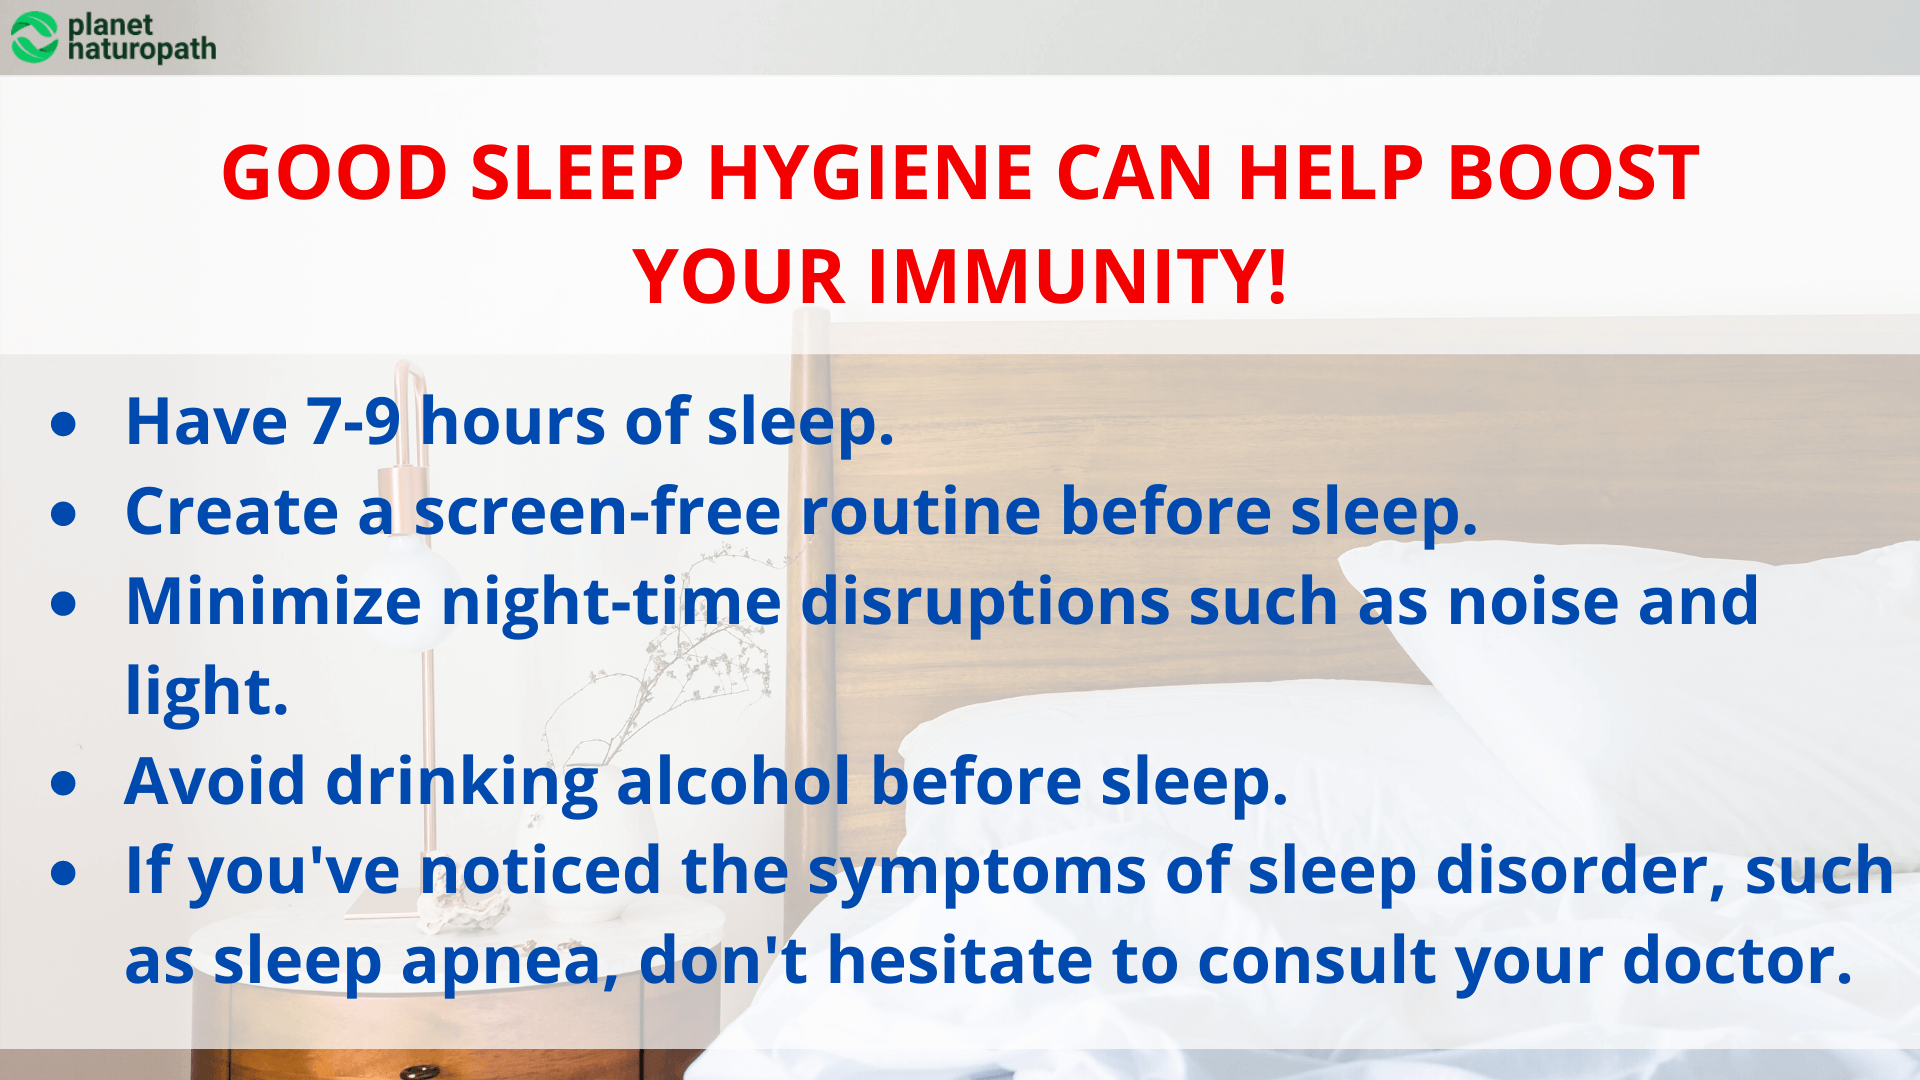 Good-sleep-hygiene-can-help-boost-your-immunity